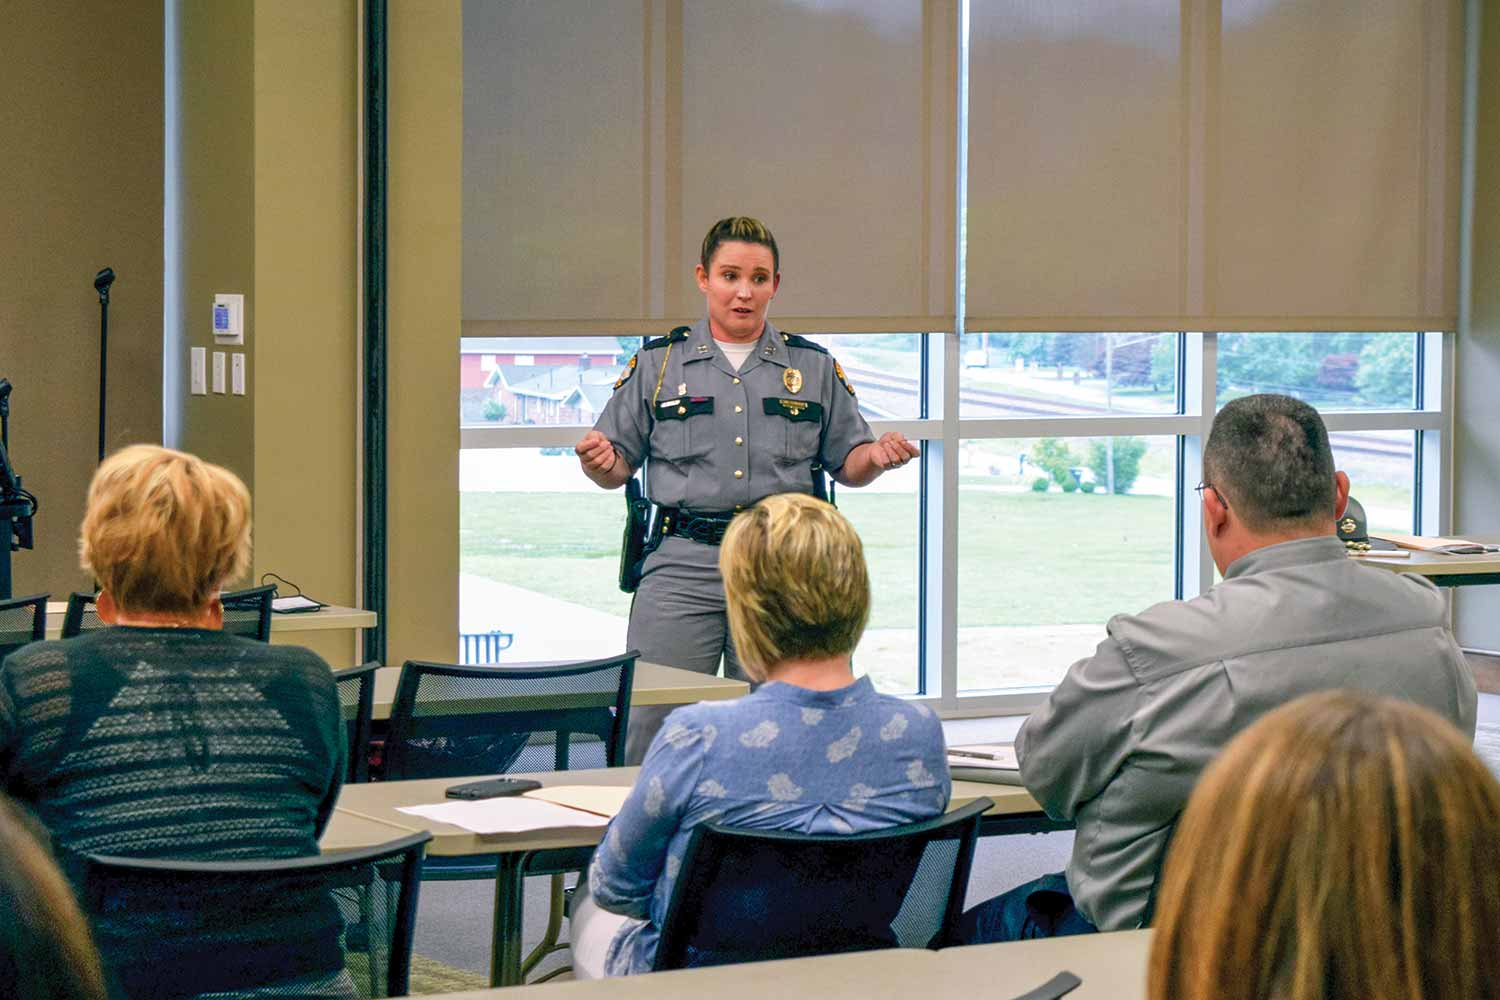 Pikeville Post Commander Jennifer Sandlin has taken the lead on the Kentucky State Police Angel Initiative. From presenting to community groups about the program, to training Angel volunteers, to preparing the men and women under her command, Sandlin is excited to see how the initiative unfolds in her post area. (Photo provided)